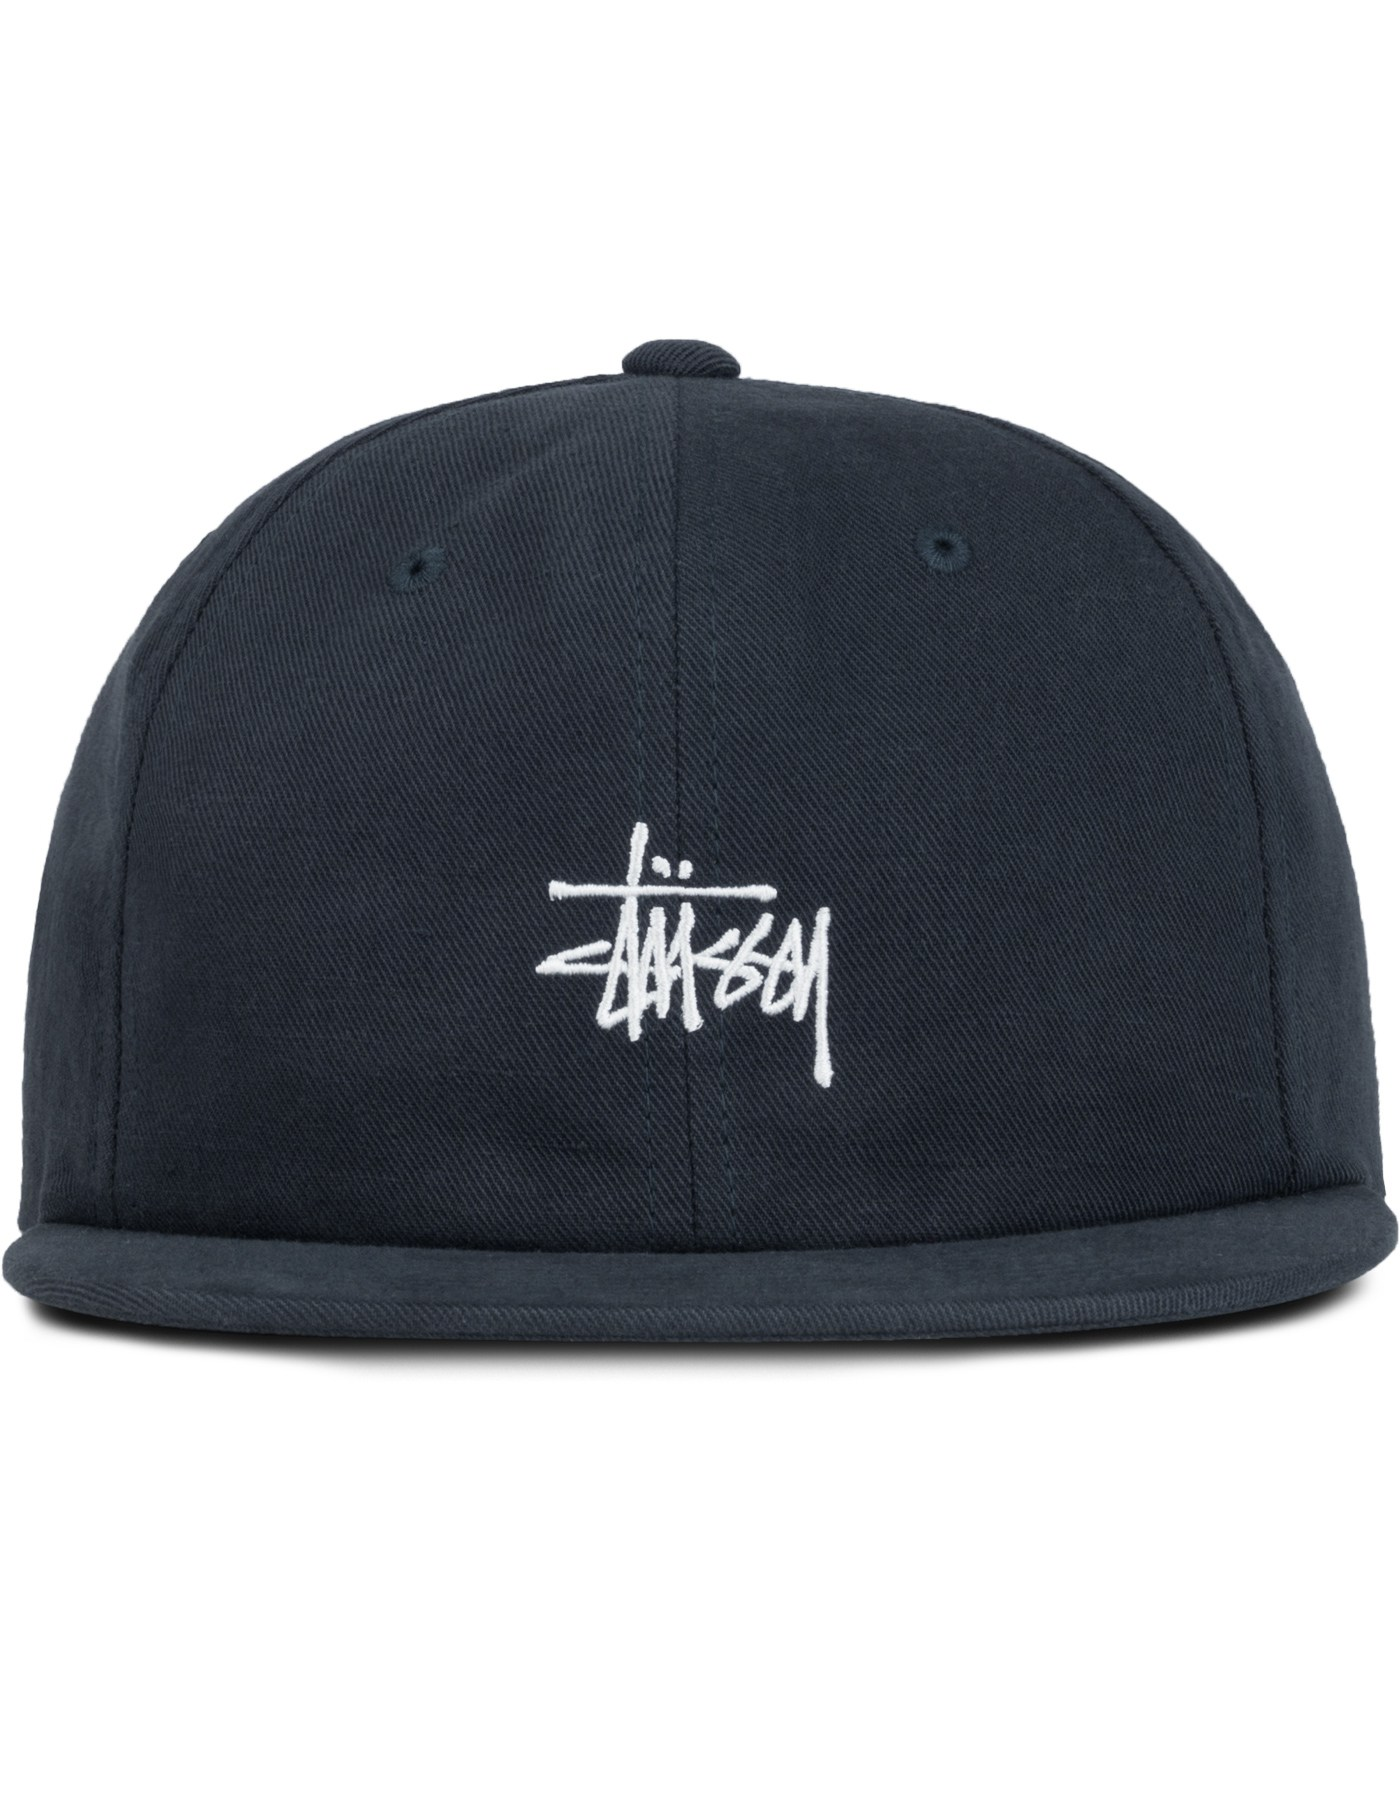 54159a2f957 Buy Original Stussy Smooth Stock Twill Cap at Indonesia